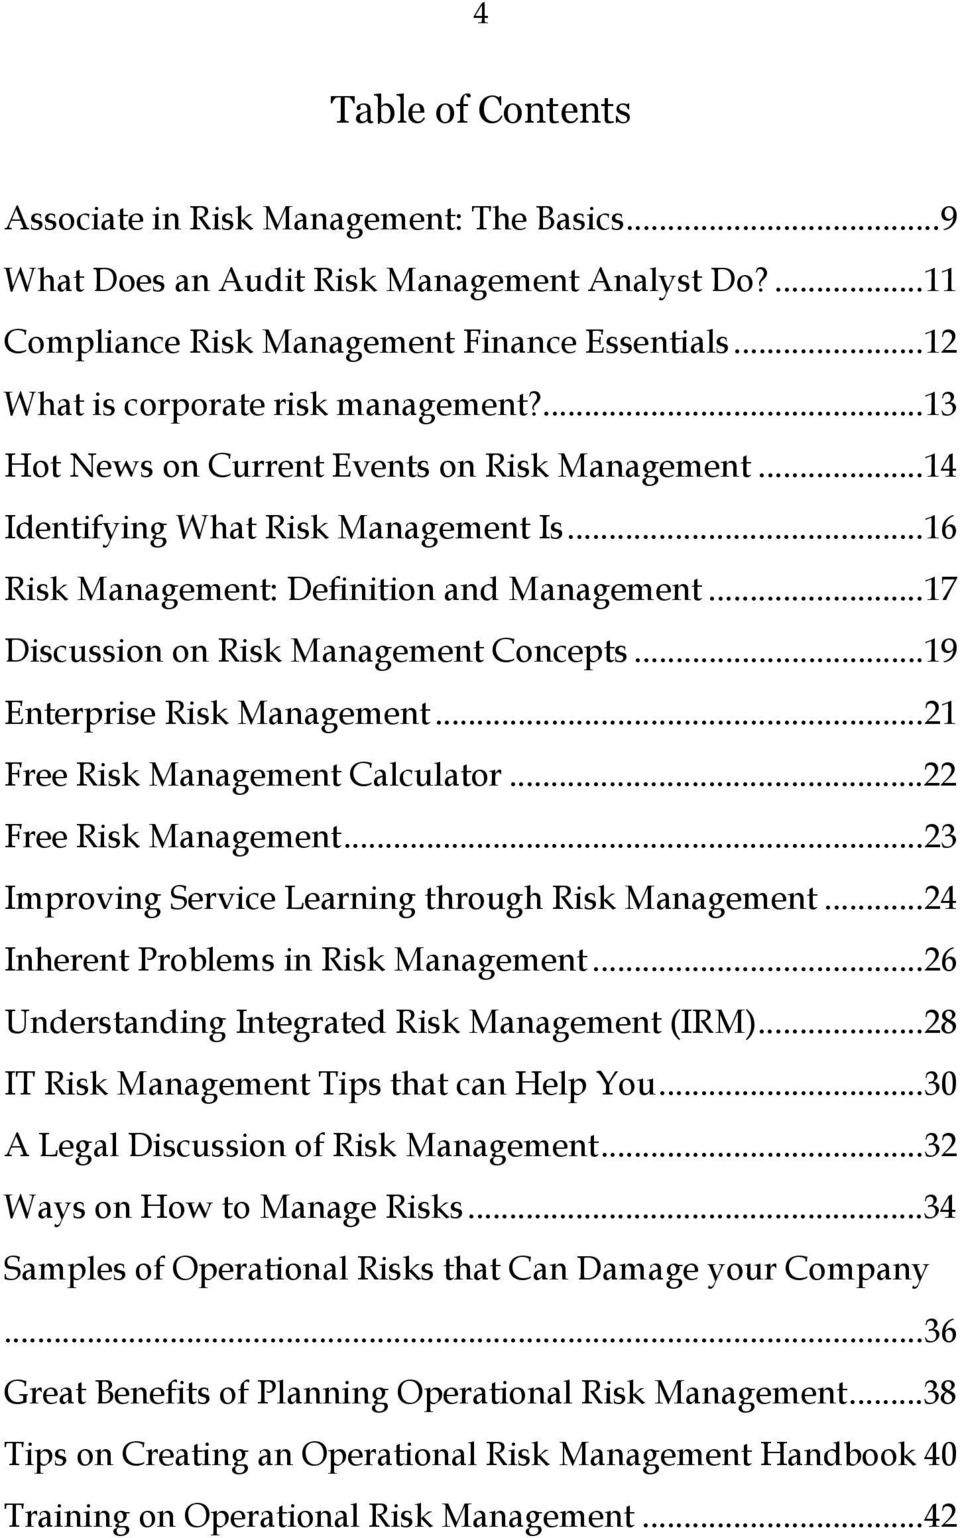 ..19 Enterprise Risk Management...21 Free Risk Management Calculator...22 Free Risk Management...23 Improving Service Learning through Risk Management...24 Inherent Problems in Risk Management.